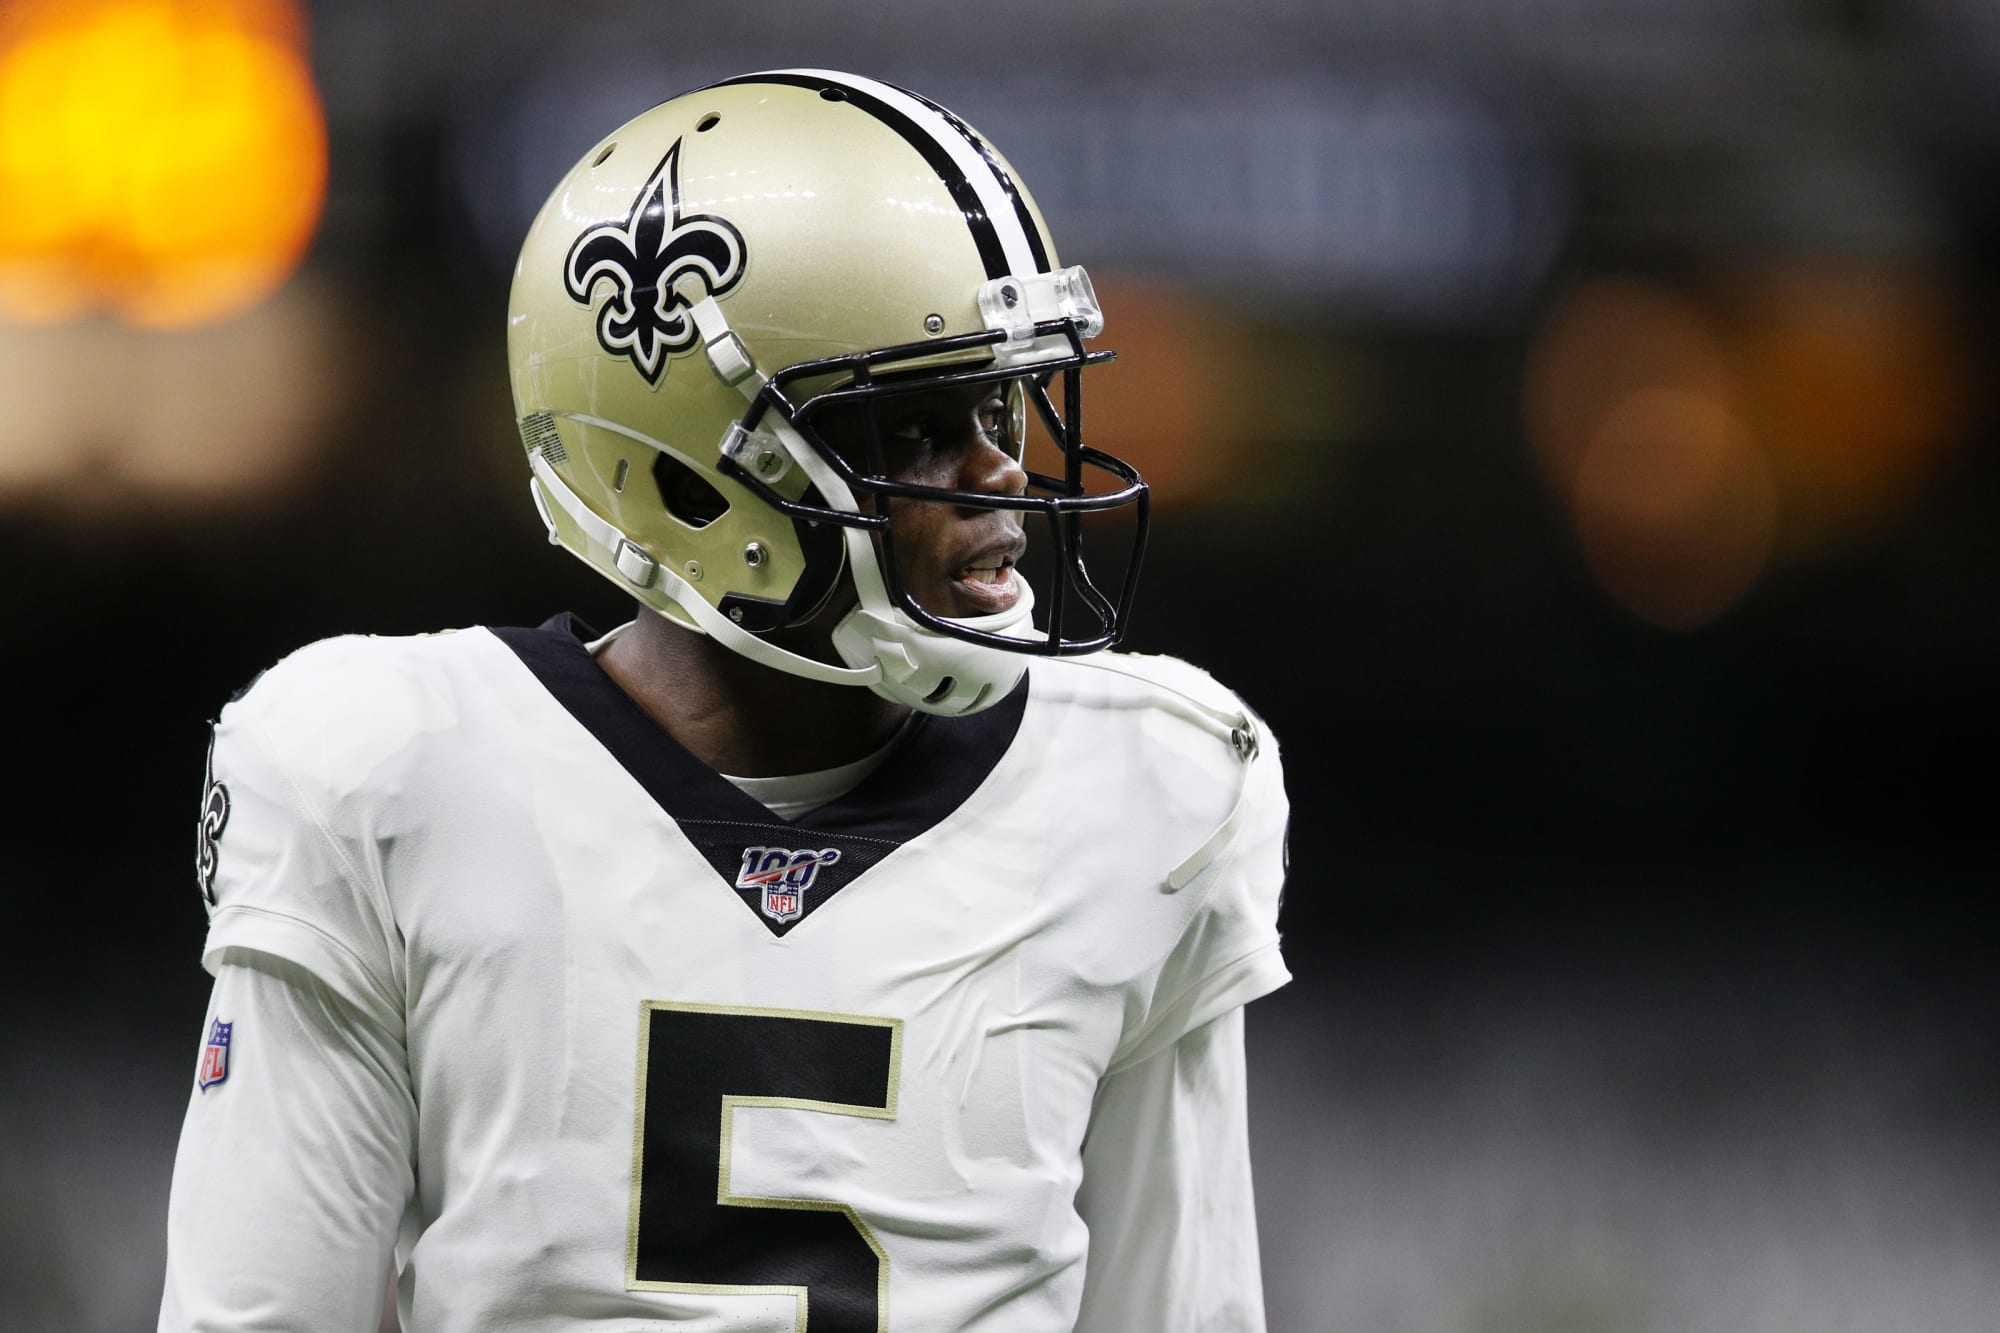 3 elements that could hinder Teddy Bridgewater's production